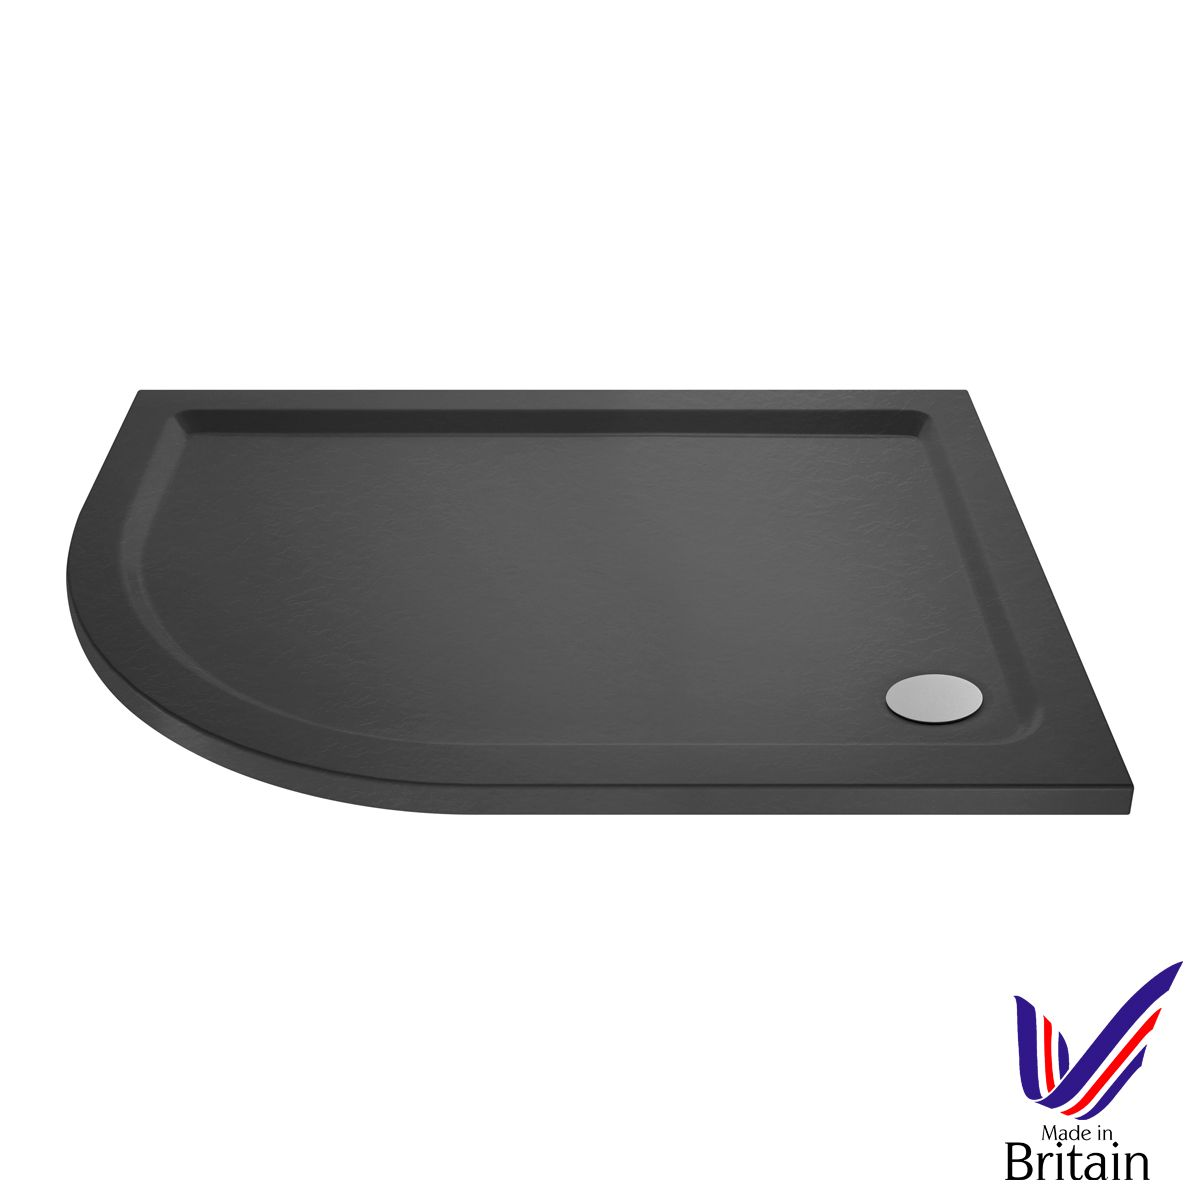 1000 x 800 Shower Tray Slate Grey Offset Quadrant Low Profile Left Hand by Pearlstone